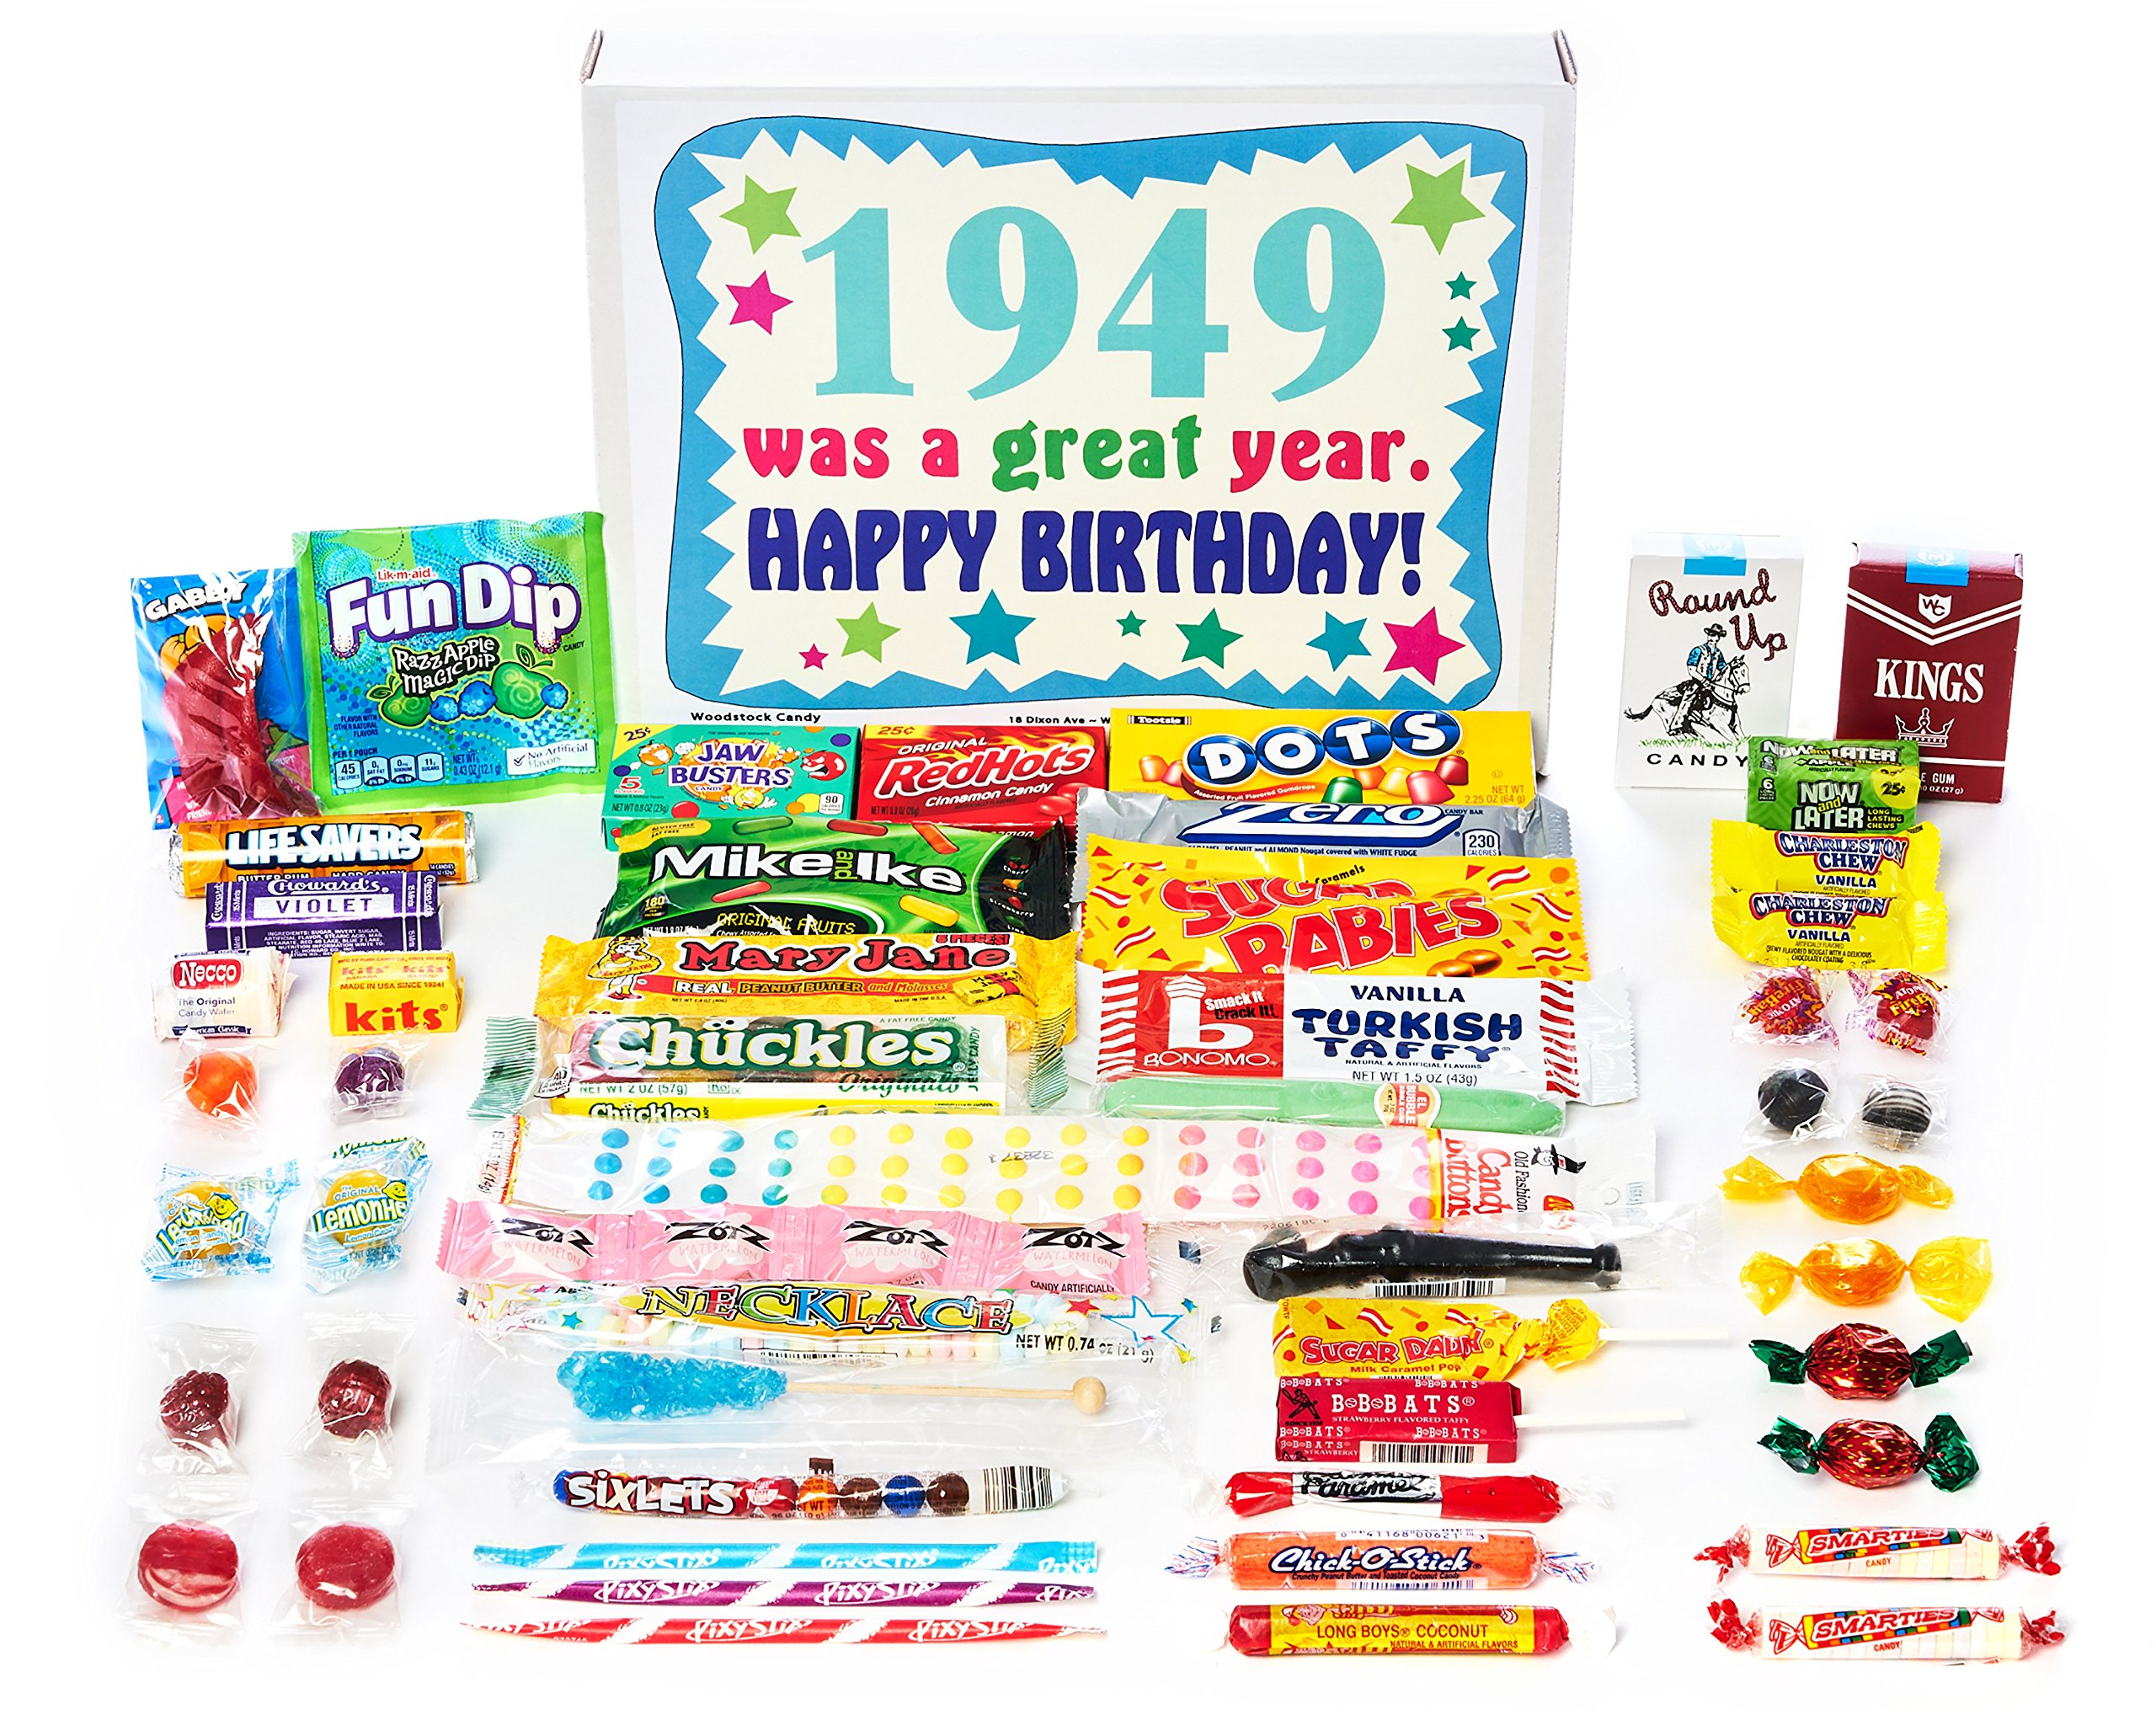 Woodstock Candy ~ 1949 70th Birthday Gift Box of Nostalgic Retro Candy Assortment from Childhood for 70 Year Old Man or Woman Born 1949